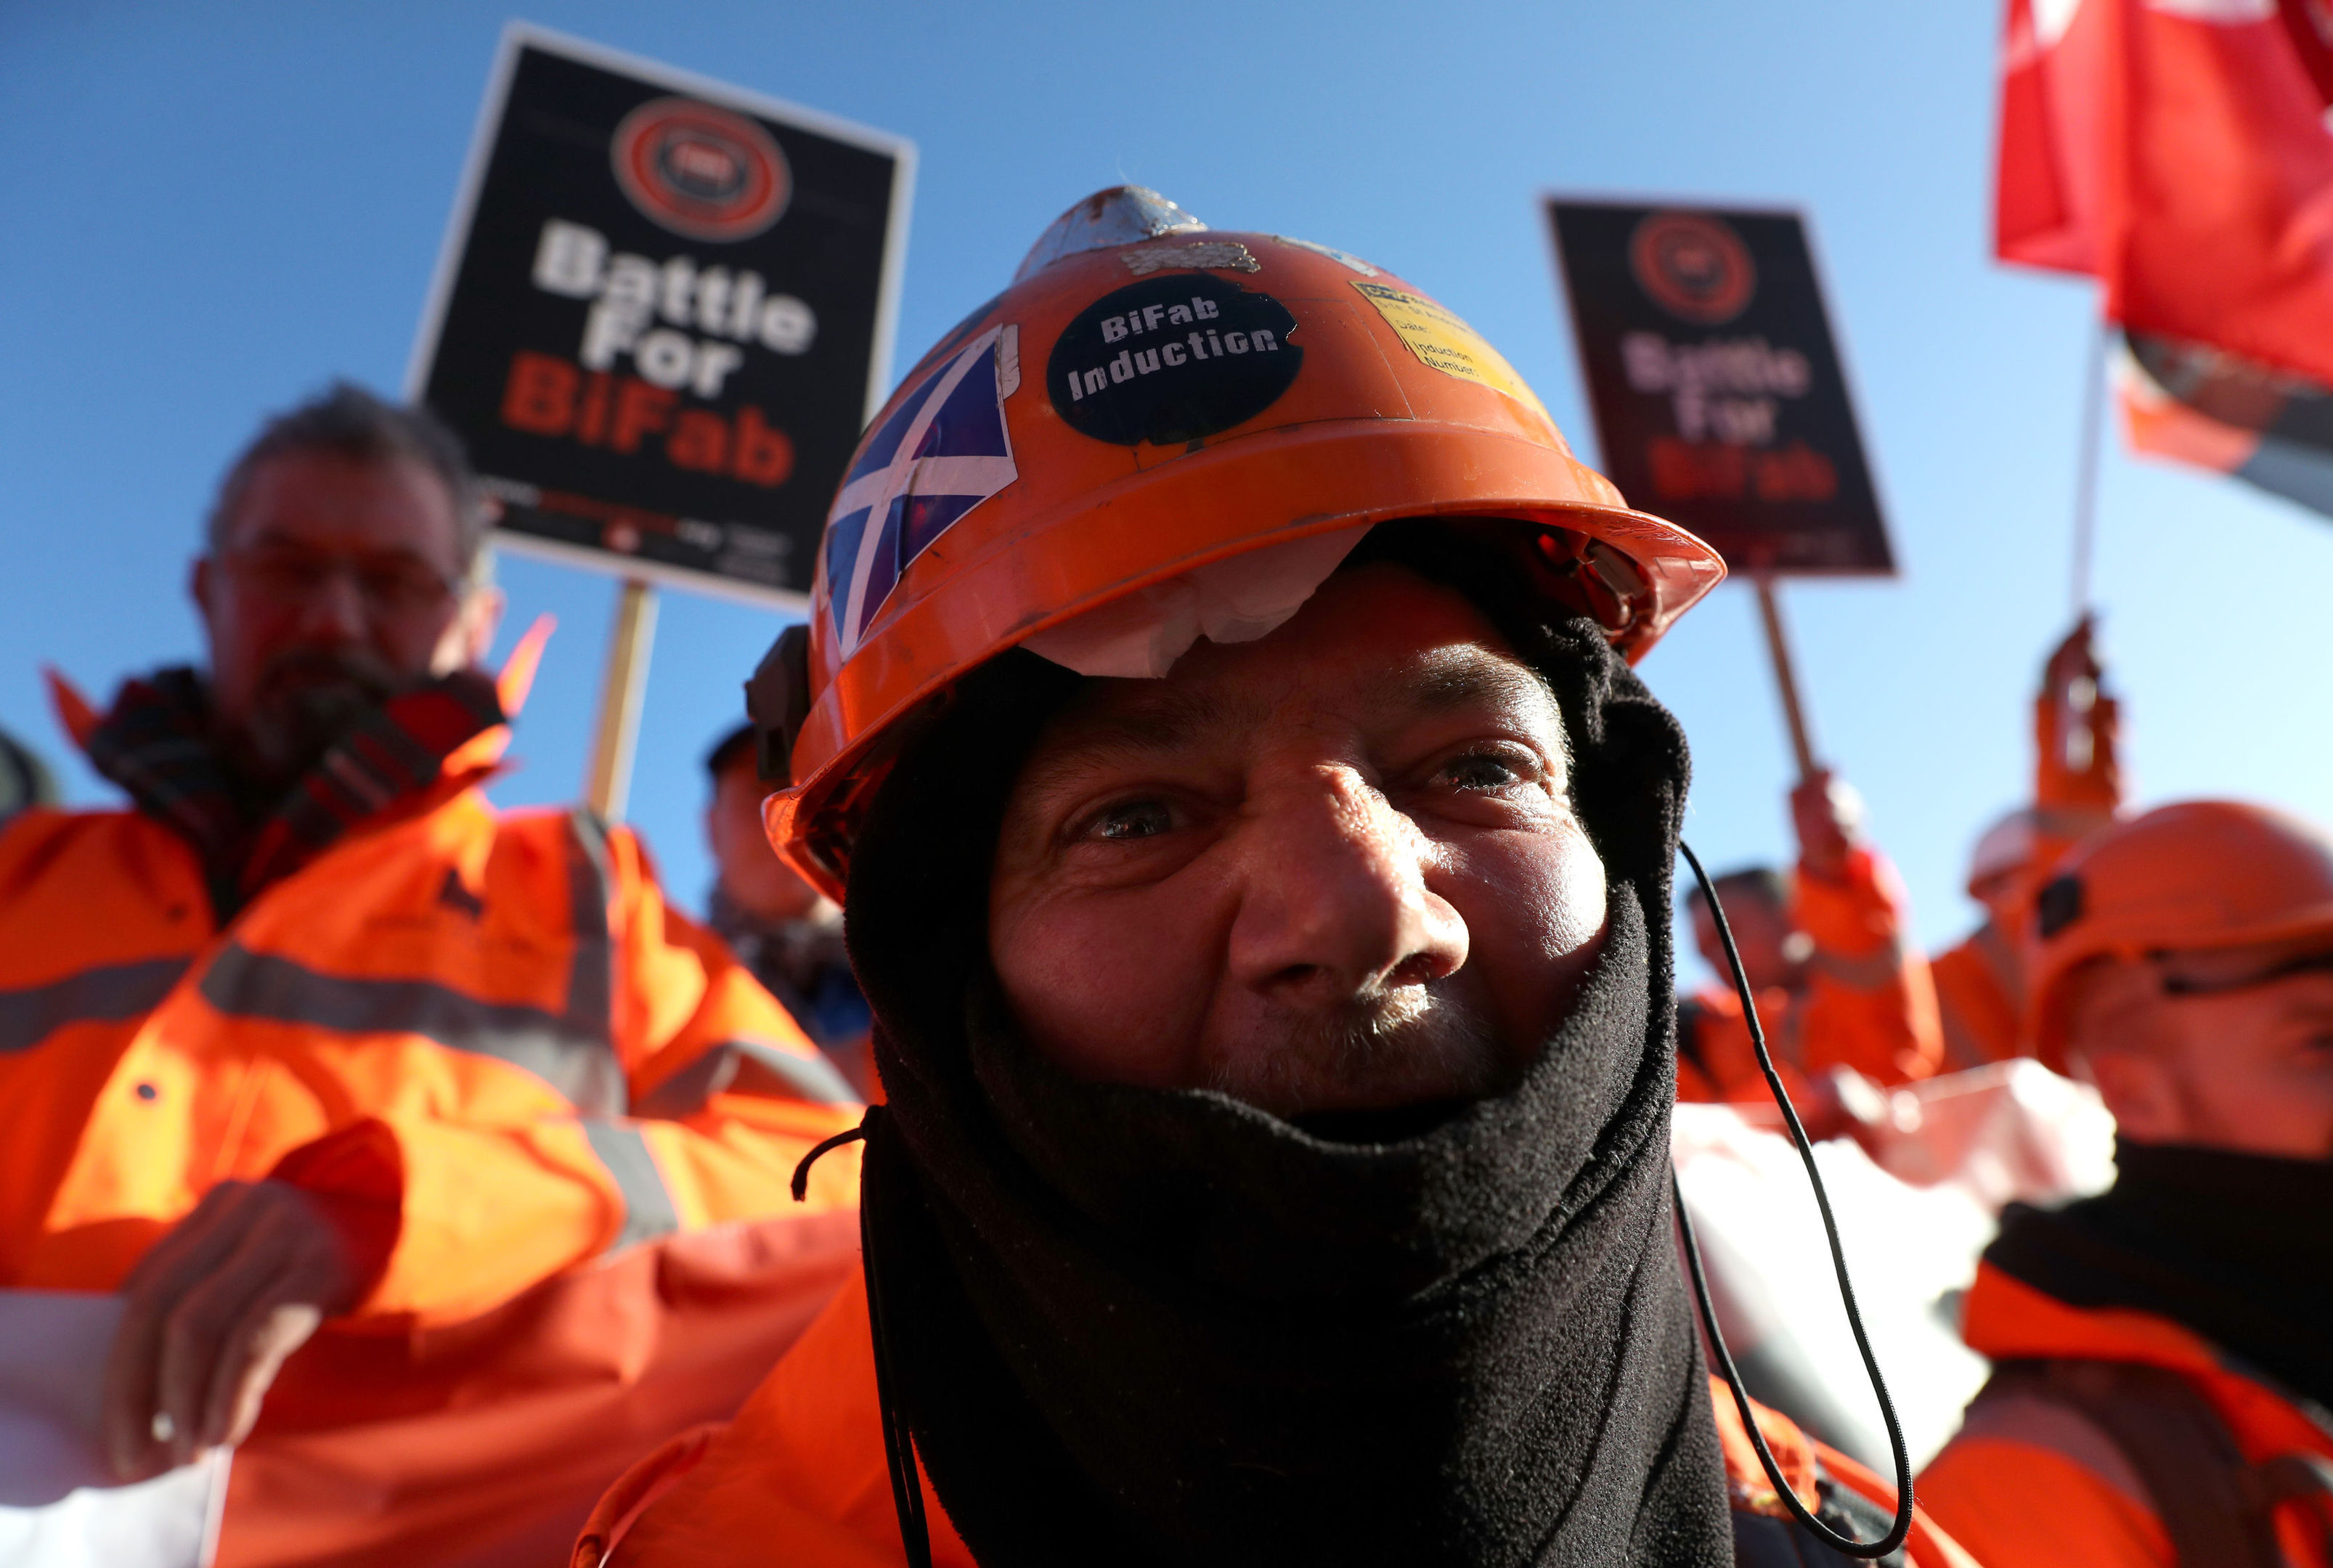 BiFab workers at a rally to Holyrood in 2017